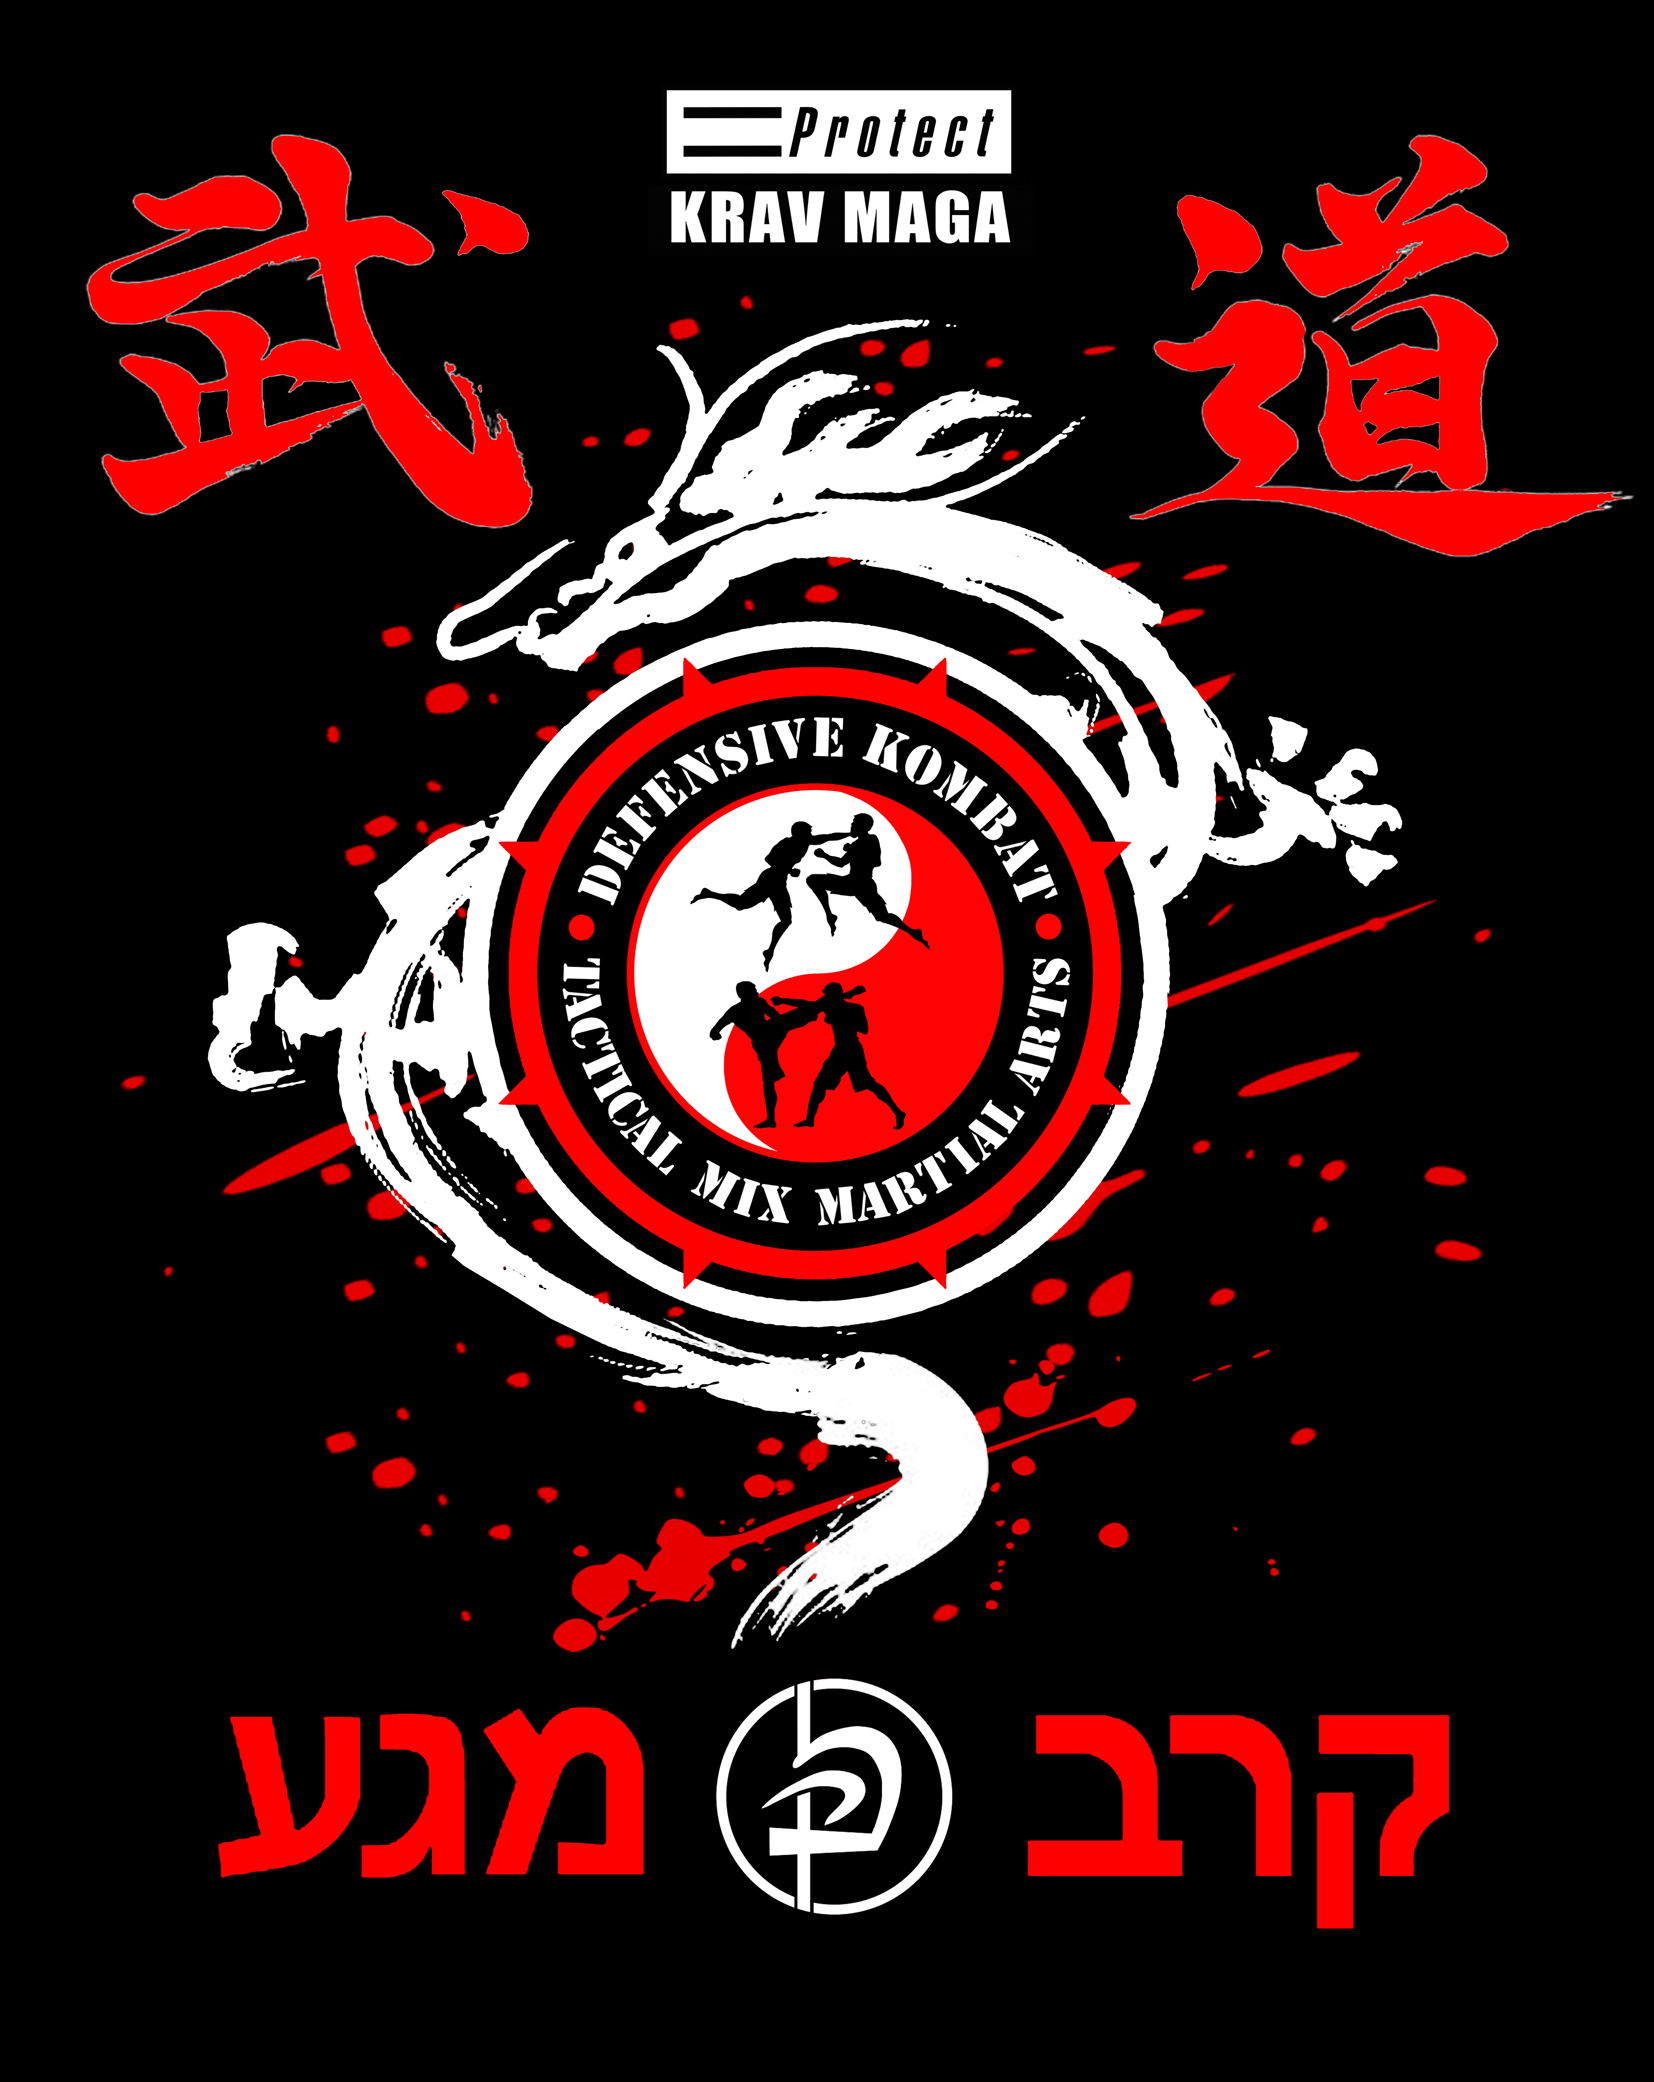 Defensive Kombat Dragon logo